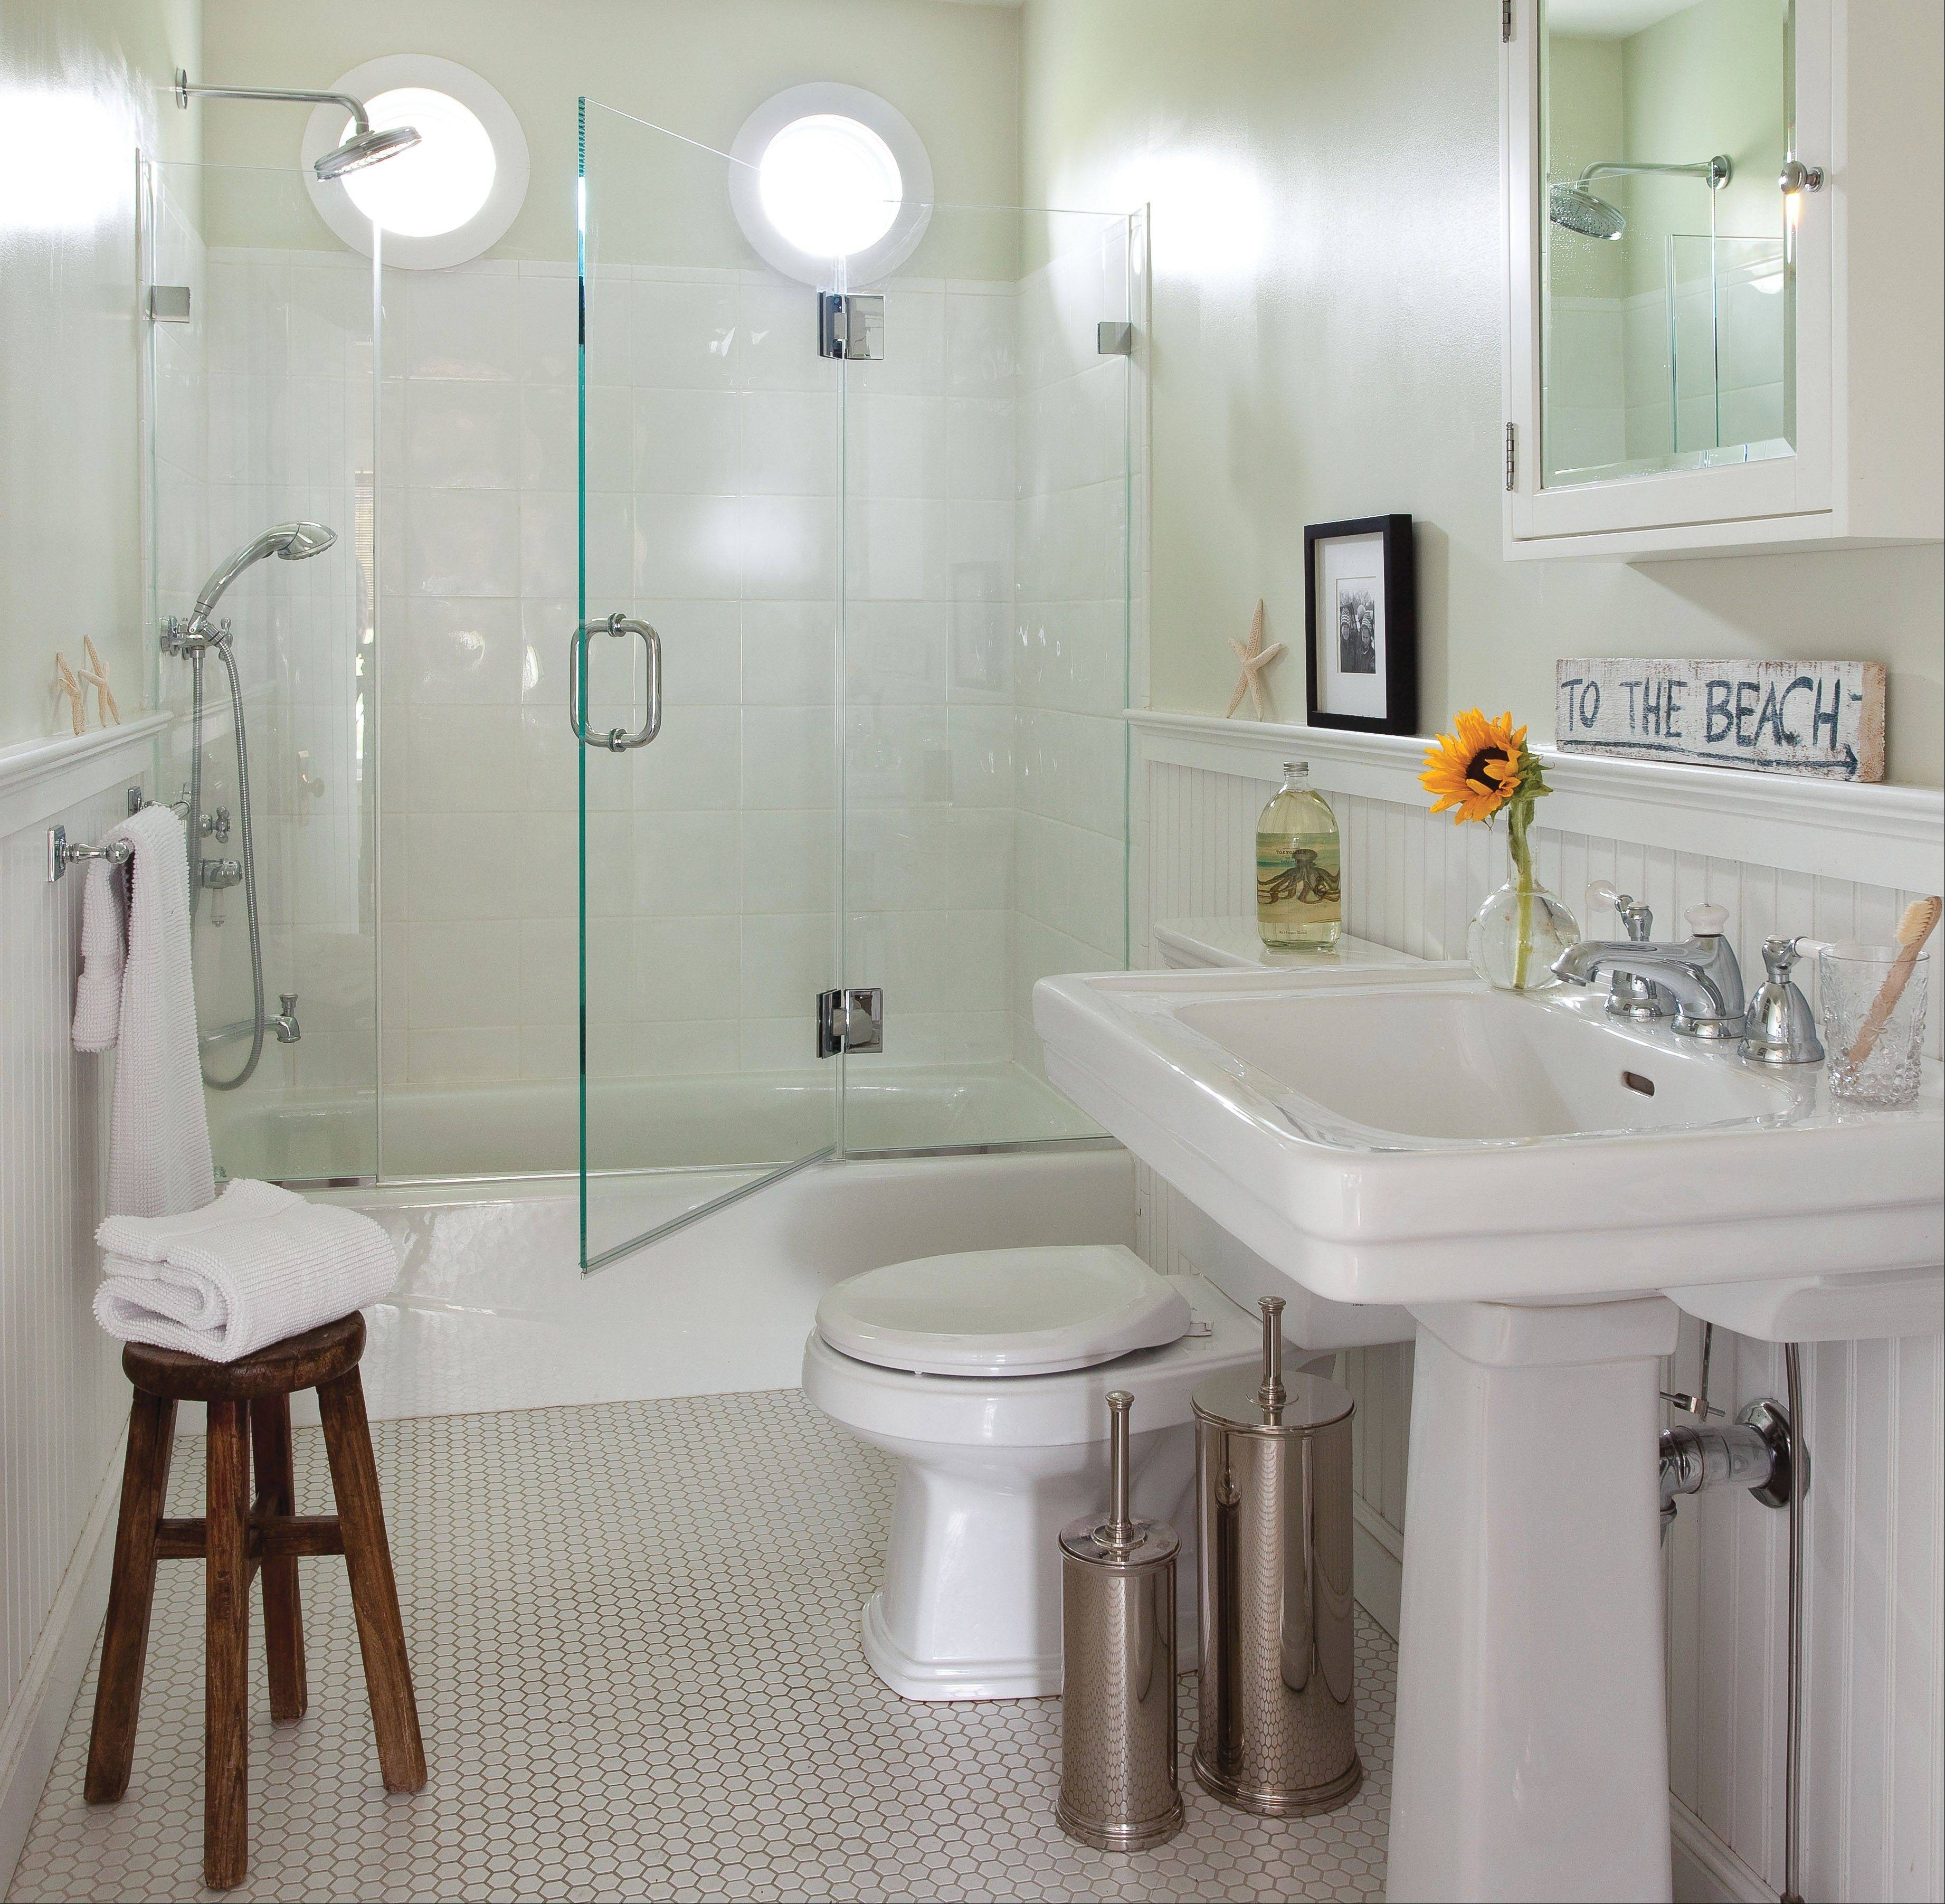 Wall Mounted Sinks And Gray Grout, Pictured, Are Design Choices That Make It